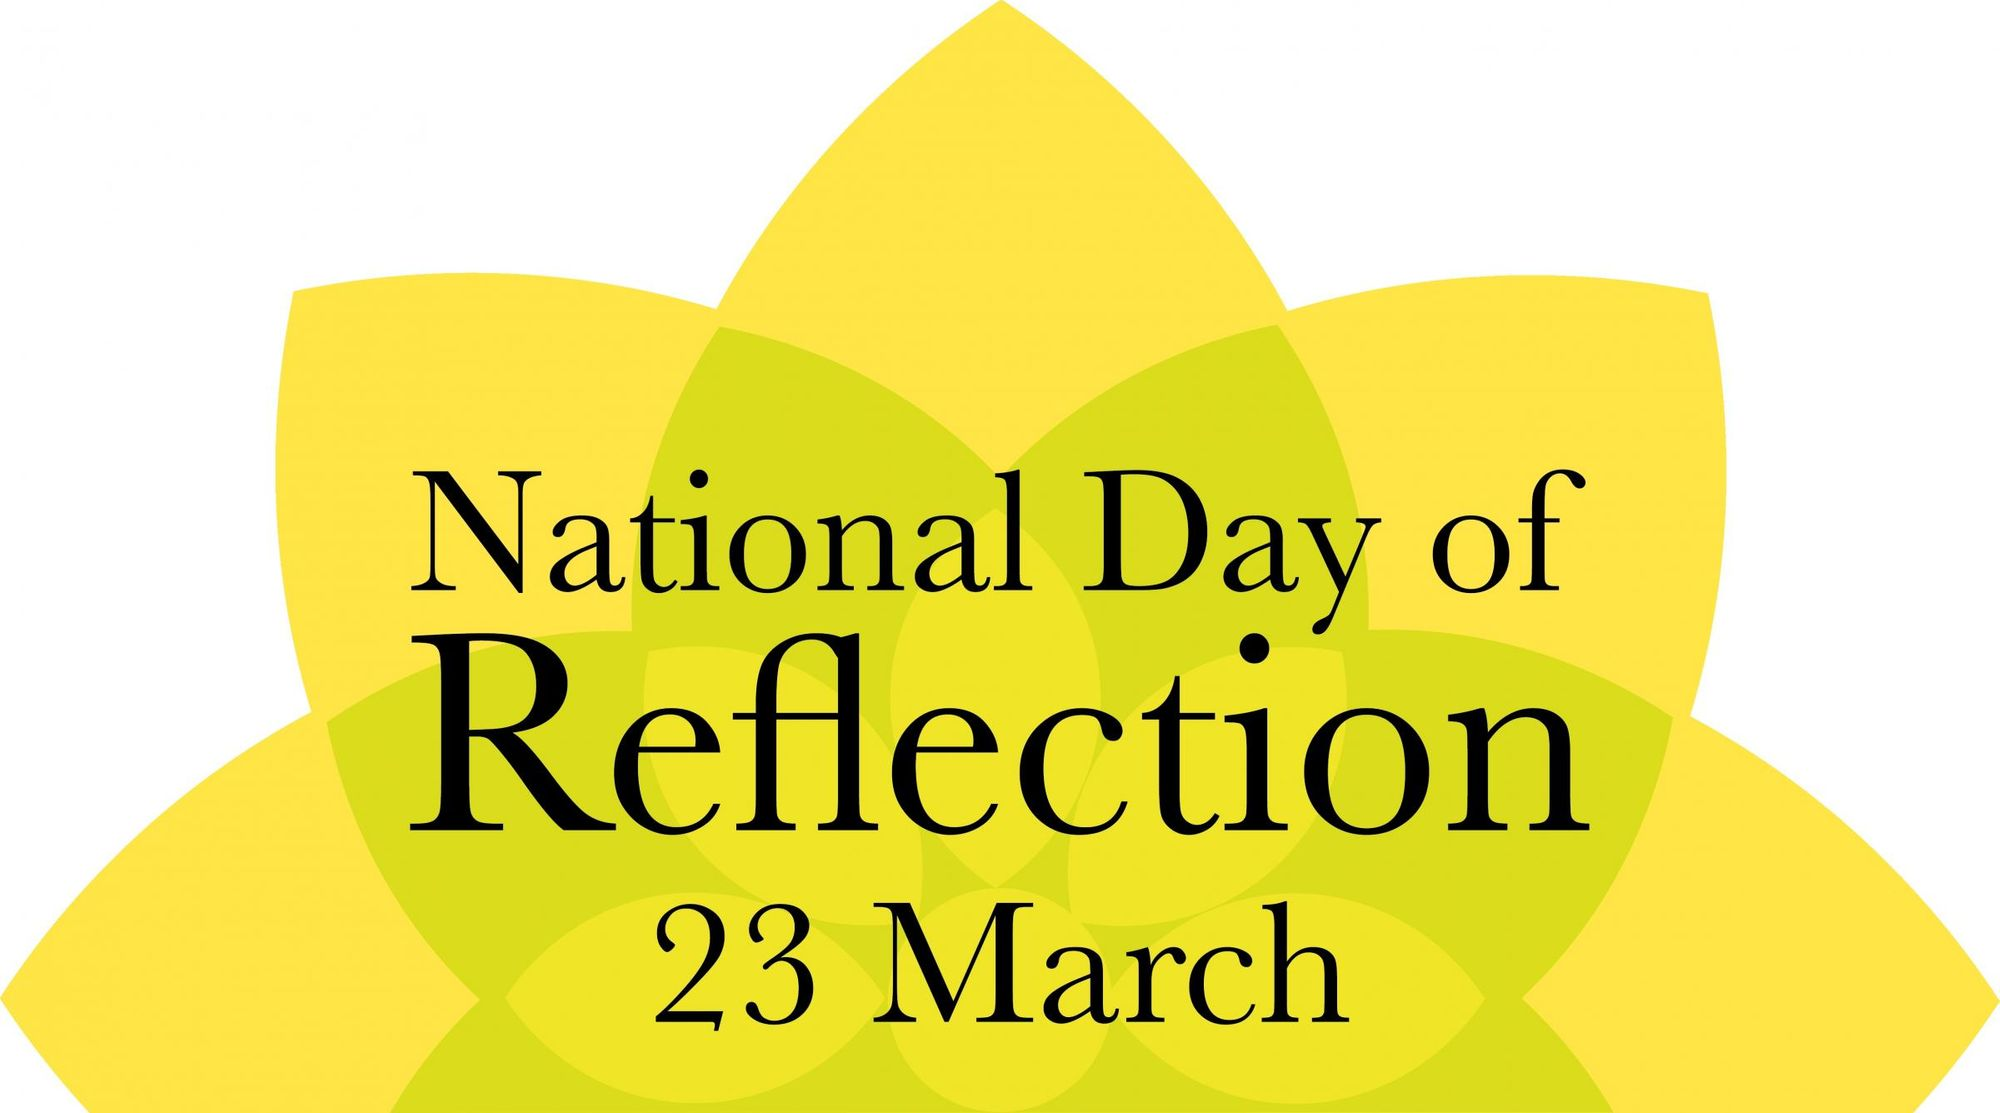 Support for National Day of Reflection across Devon gains momentum | InYourArea News